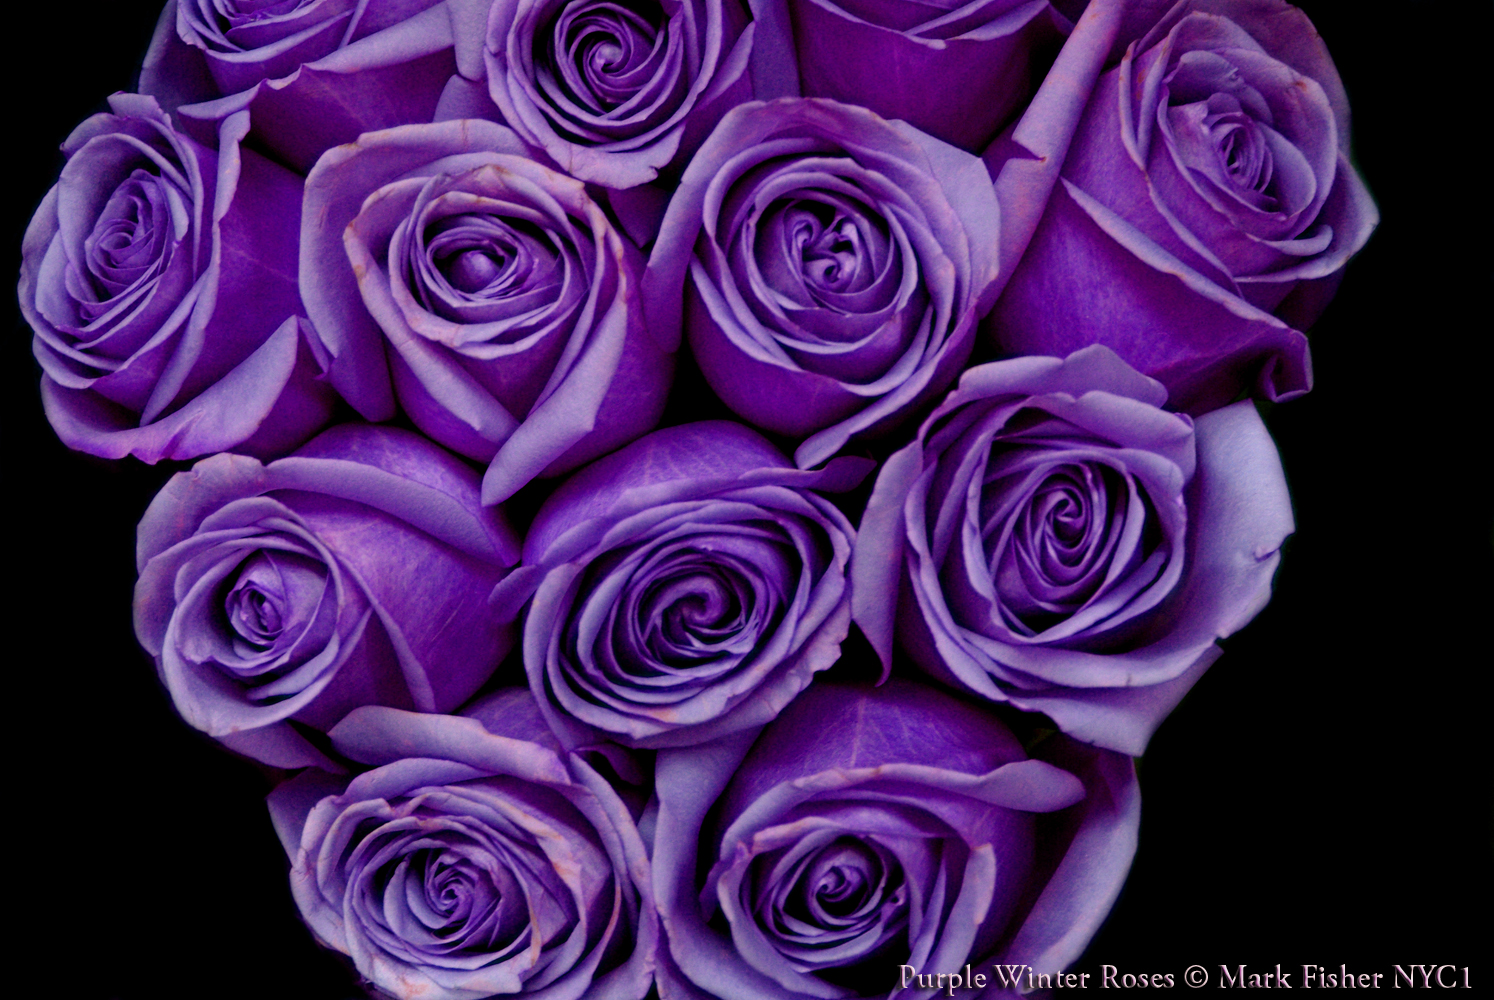 Purple Roses Background Images: Purple Winter Roses Flowers Design Wallpaper